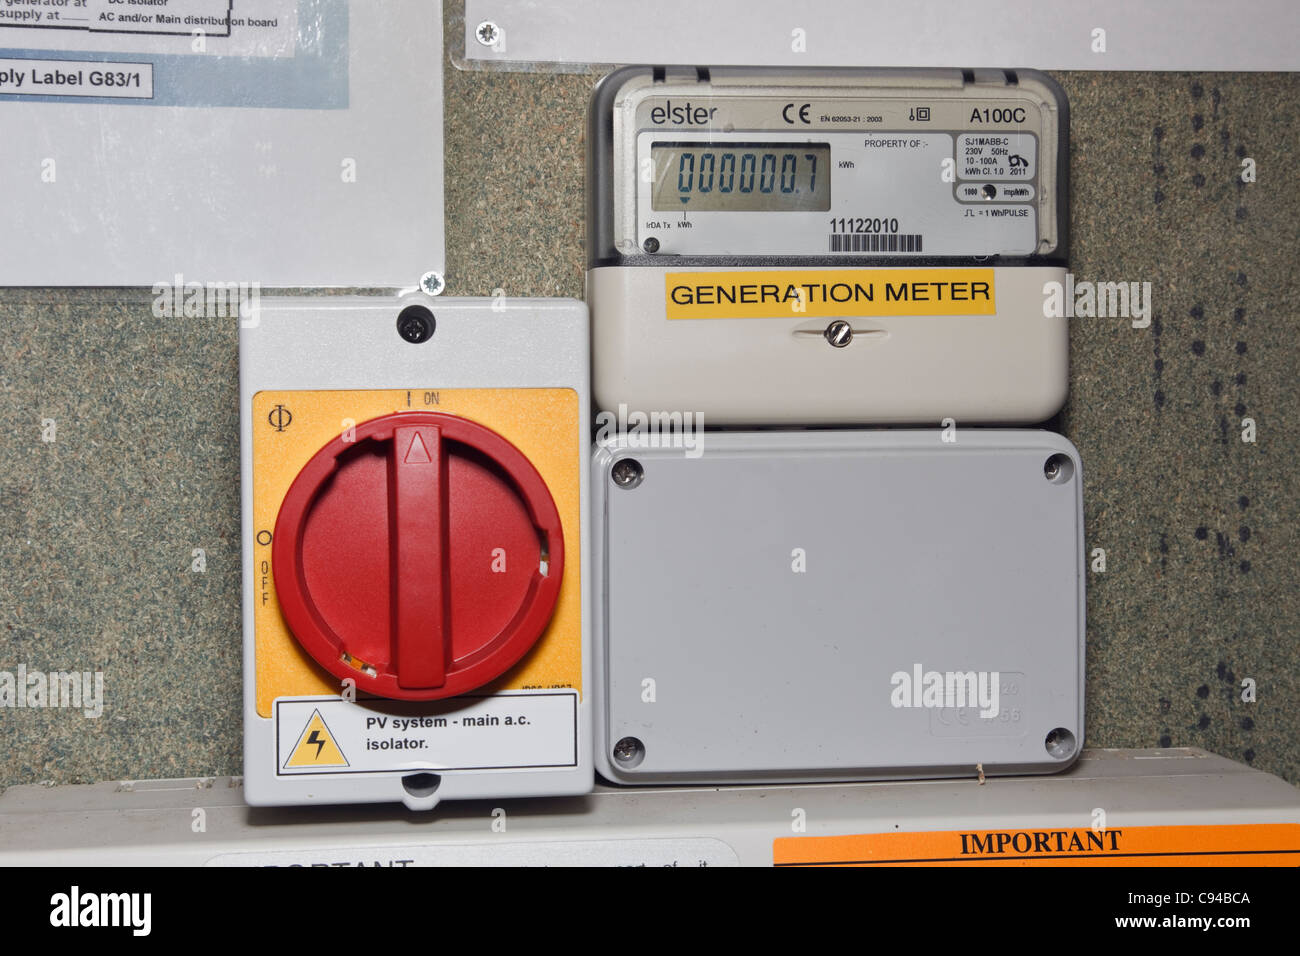 Pv Isolation Switch And New Domestic Generation Meter